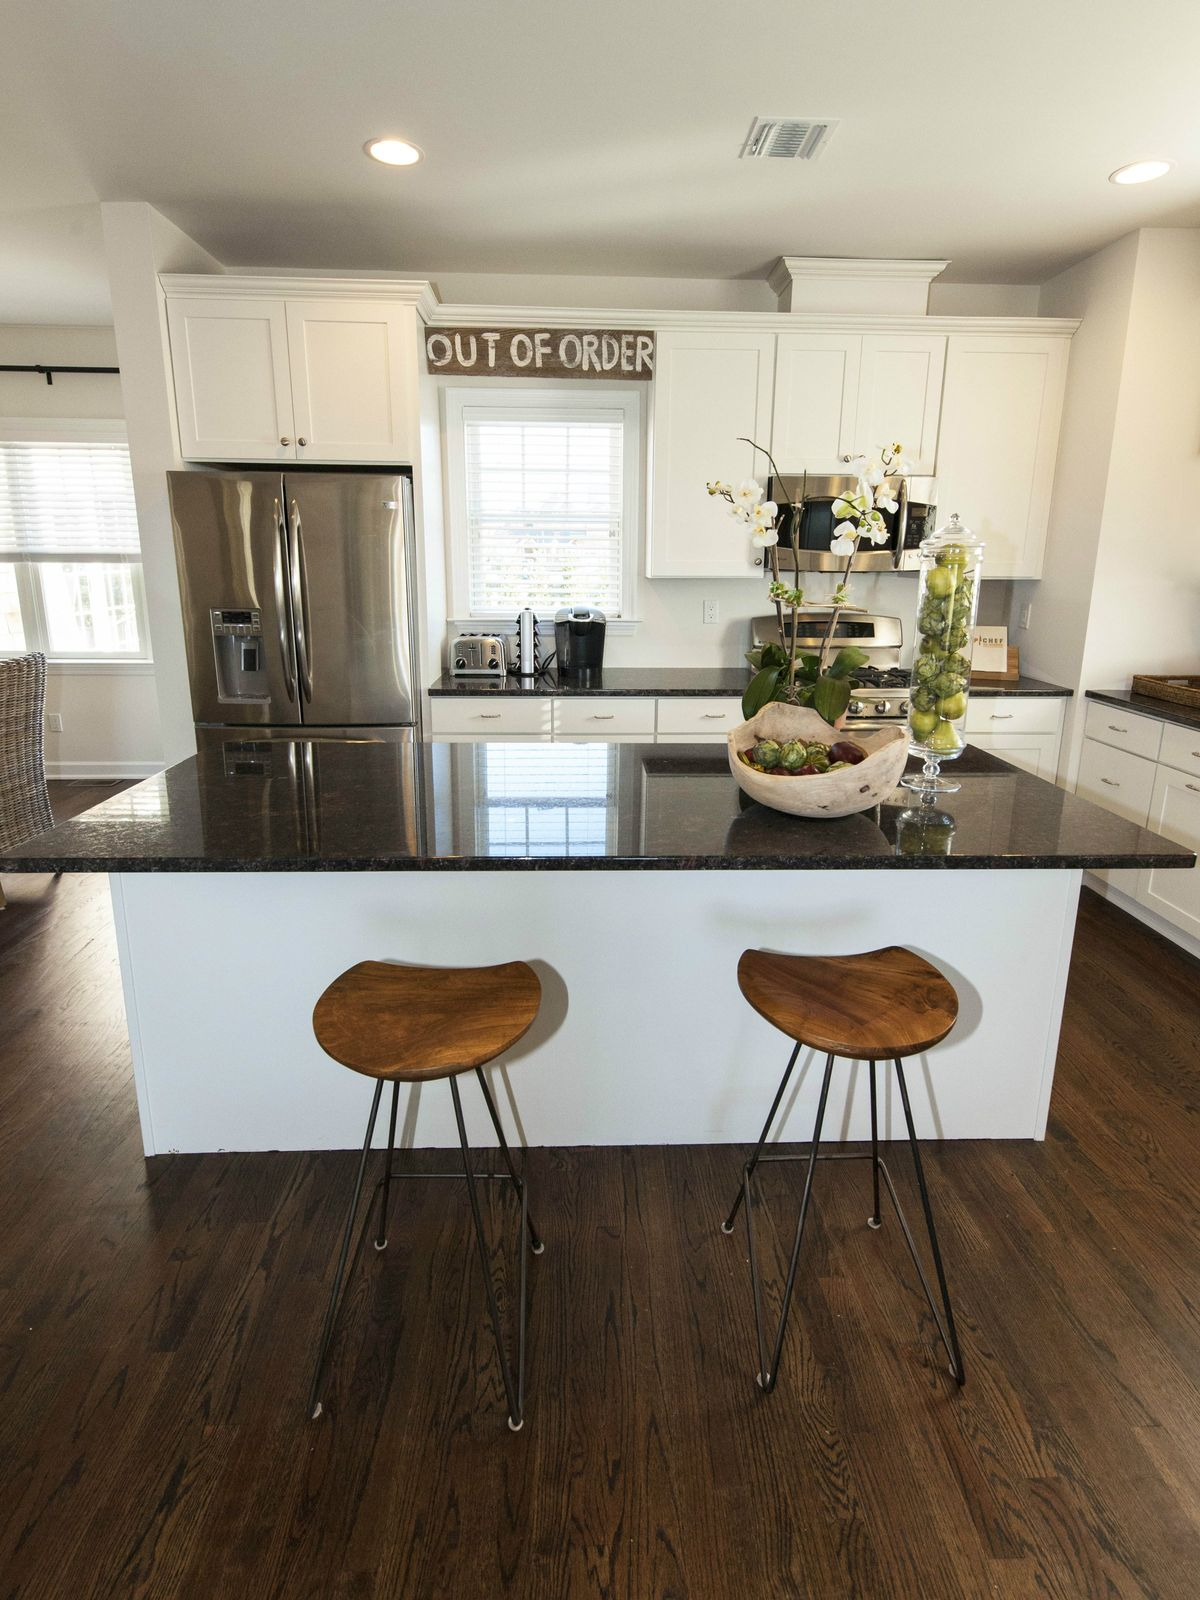 Model Home Now for Sale Fully Furnished